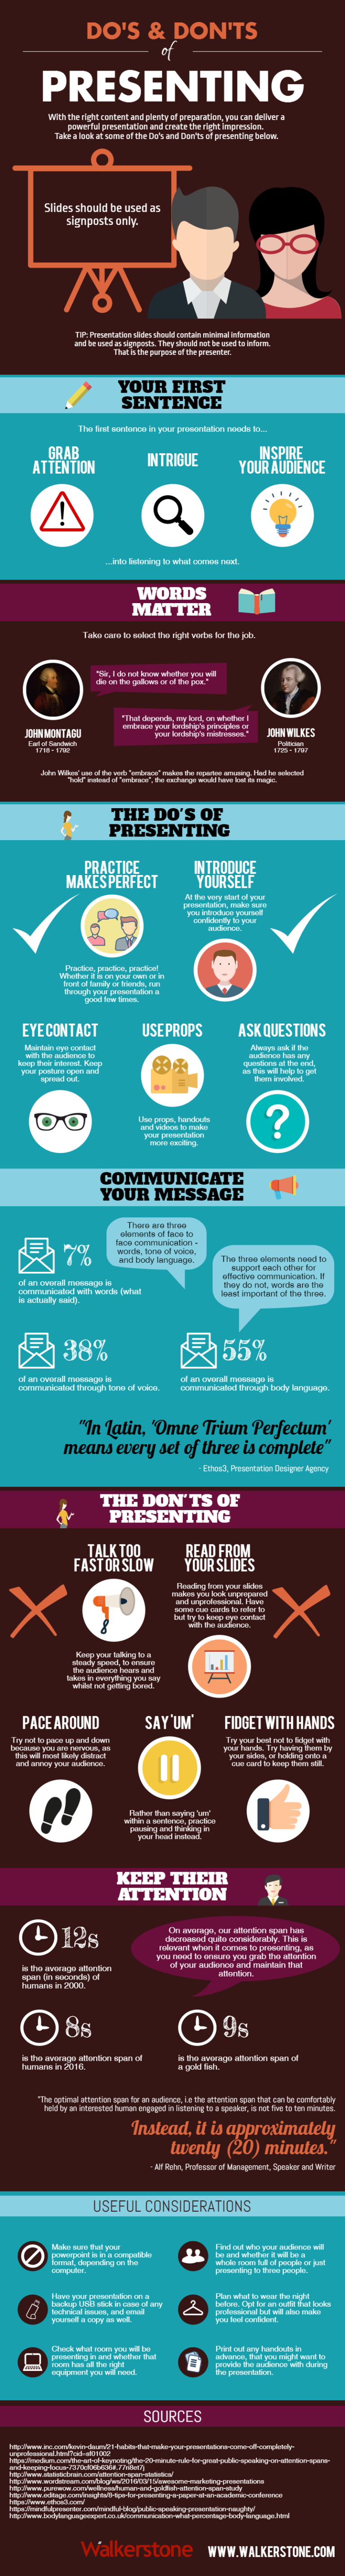 Tips for giving an effective presentation